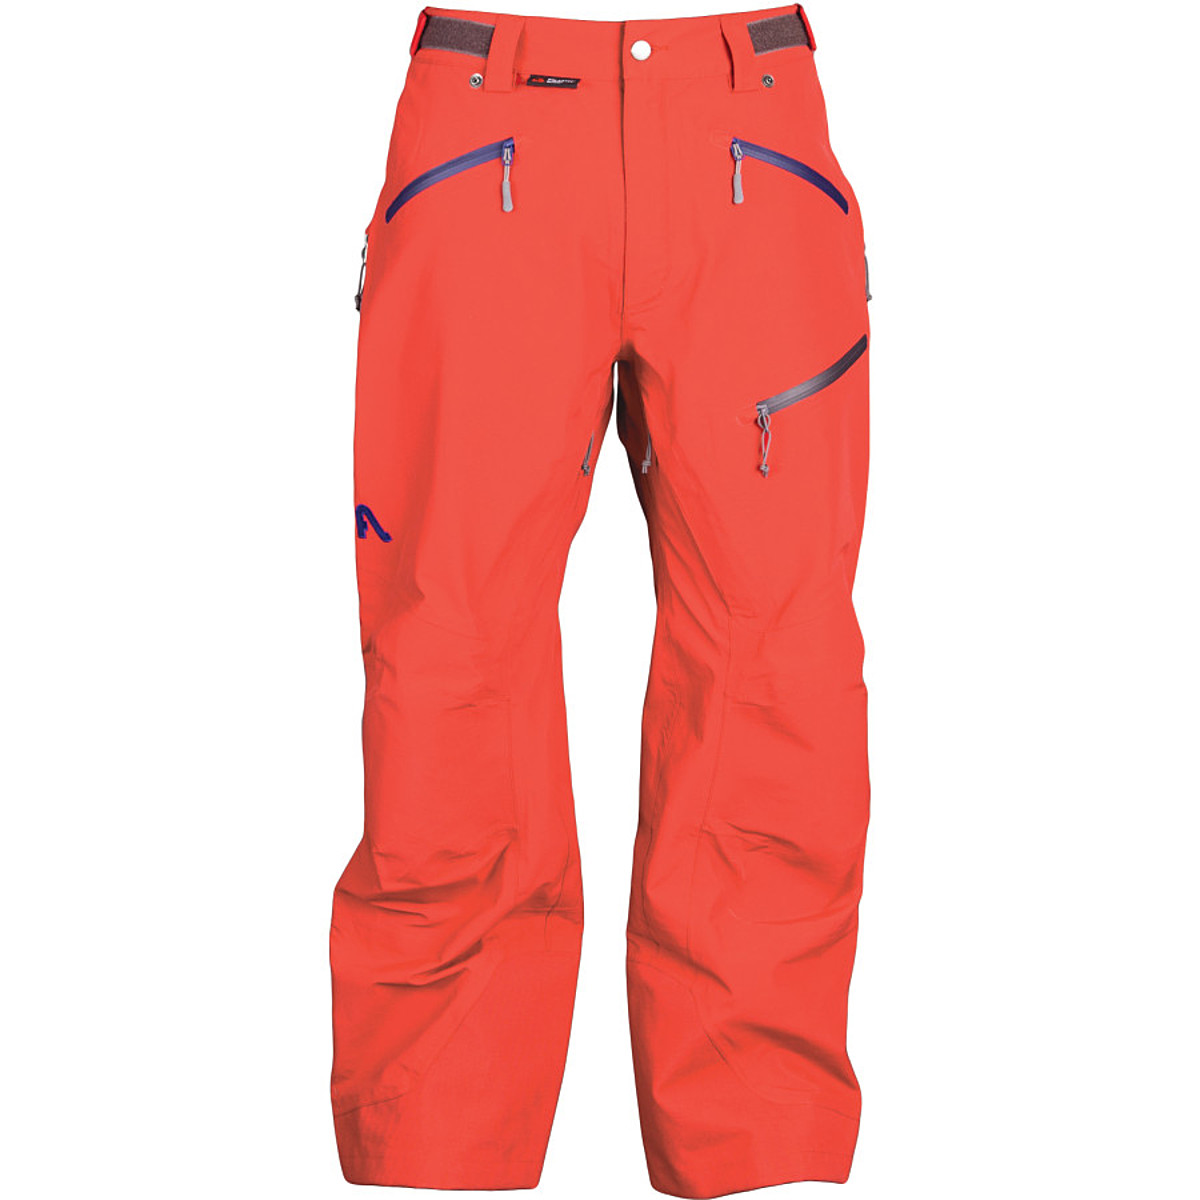 Flylow Gear Compound 2.0 Pant